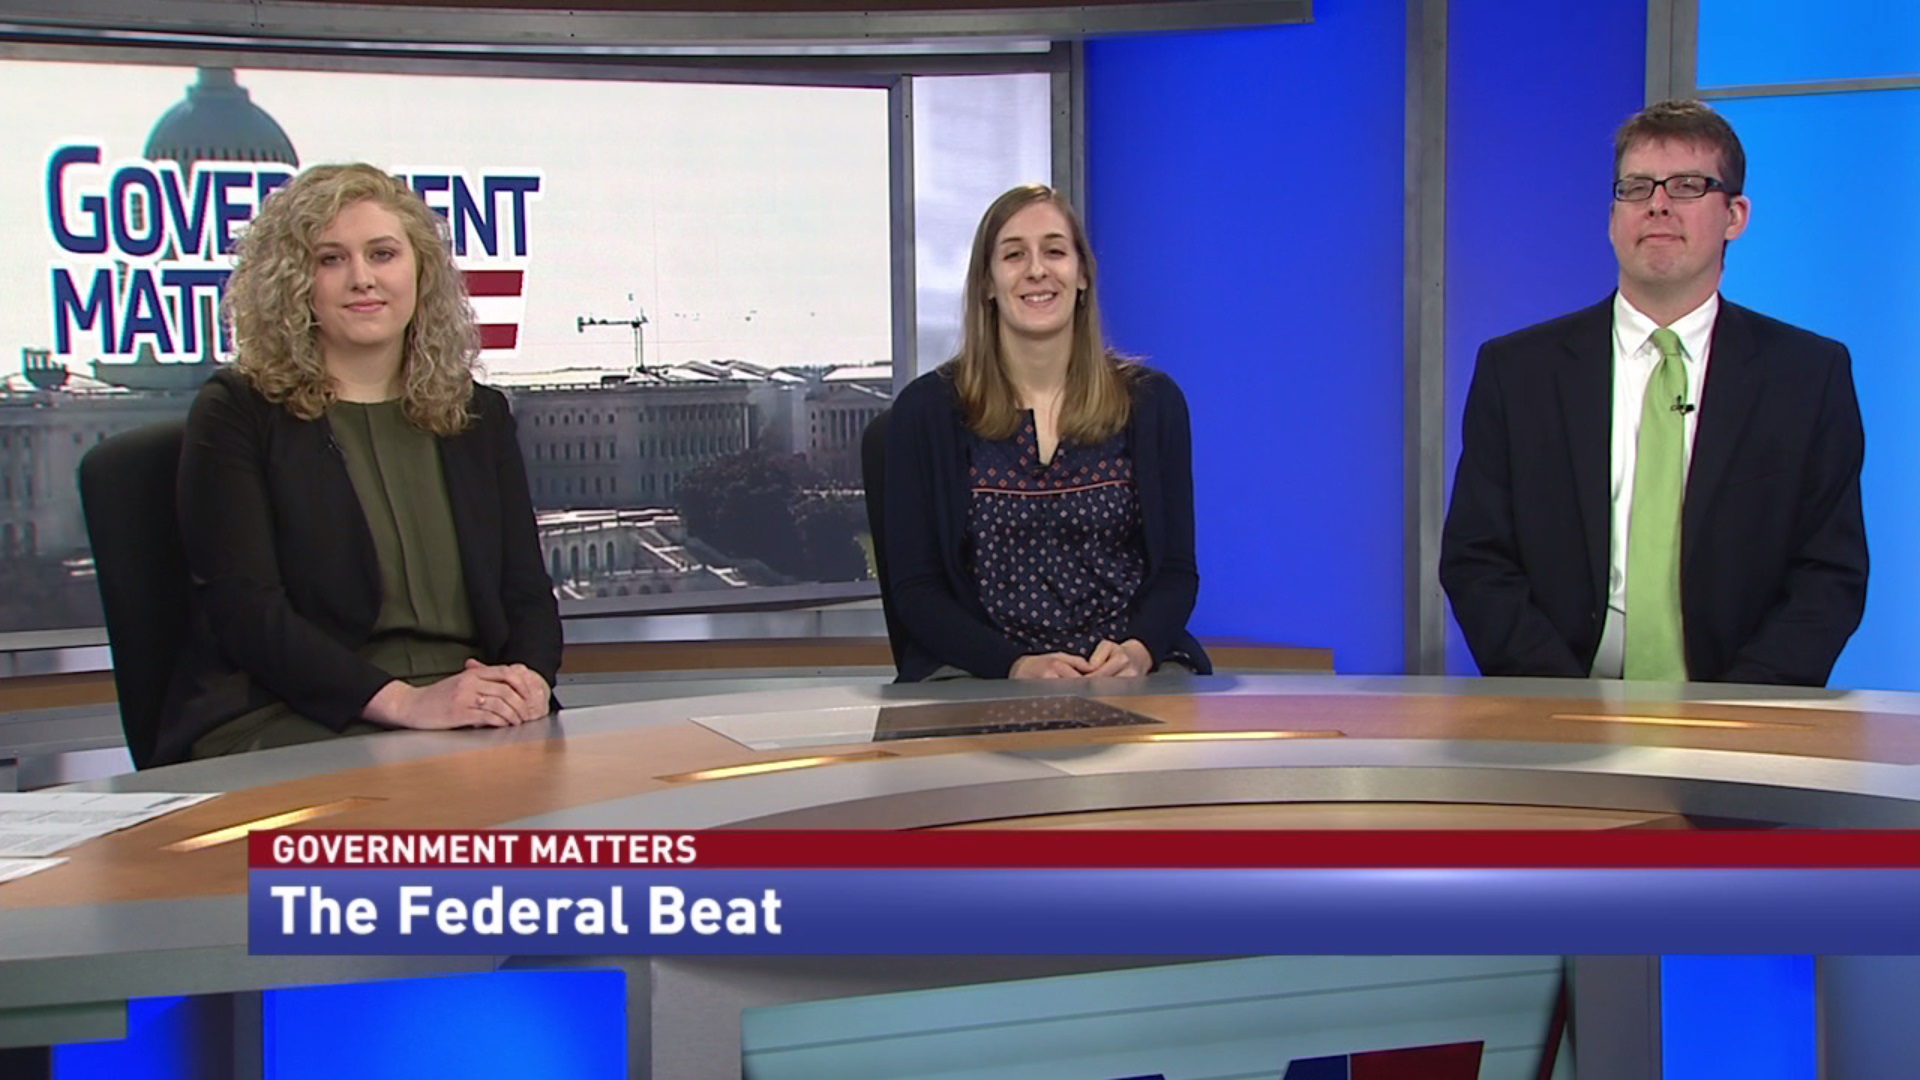 The Federal Beat – March 25, 2018